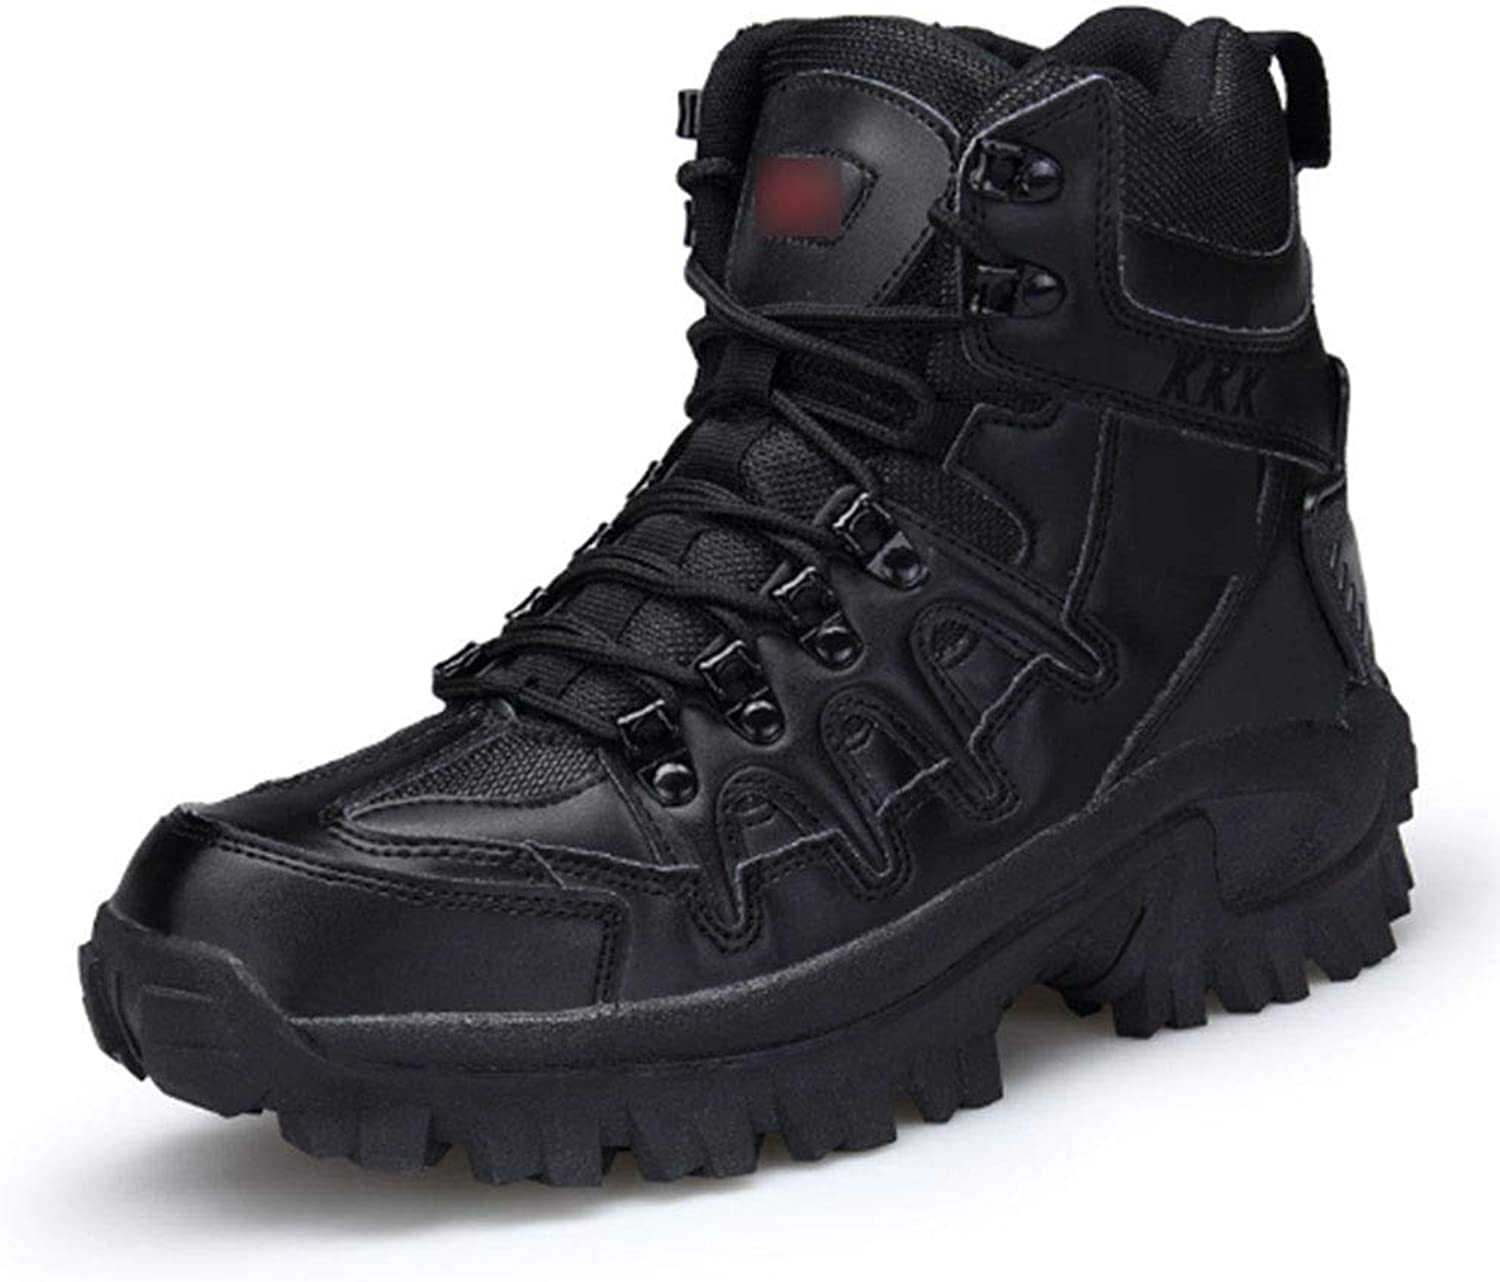 QIKAI Tactical Boots Zip High Tactical shoes Tactical Boots Outdoor Large Size Sand color Training Boots